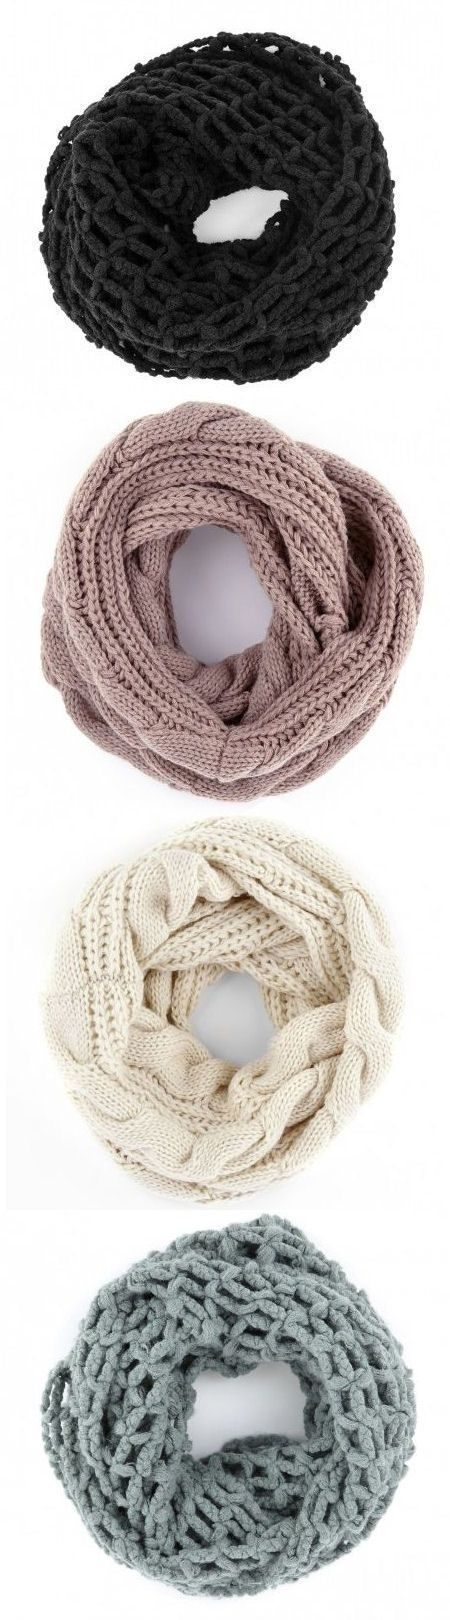 Cozy Knit Scarves for Winter